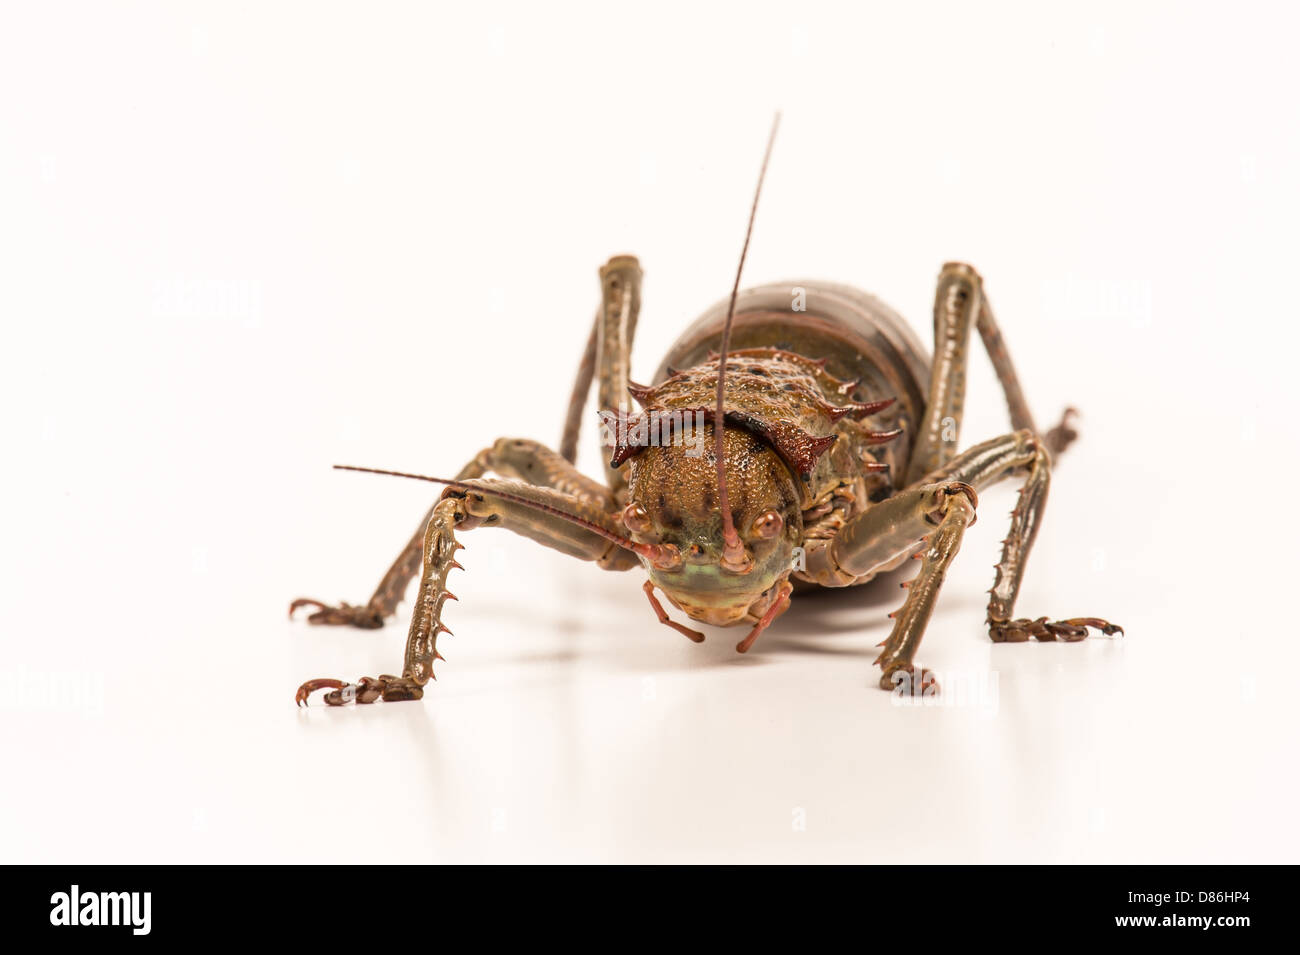 Great Armored cricket - Stock Image